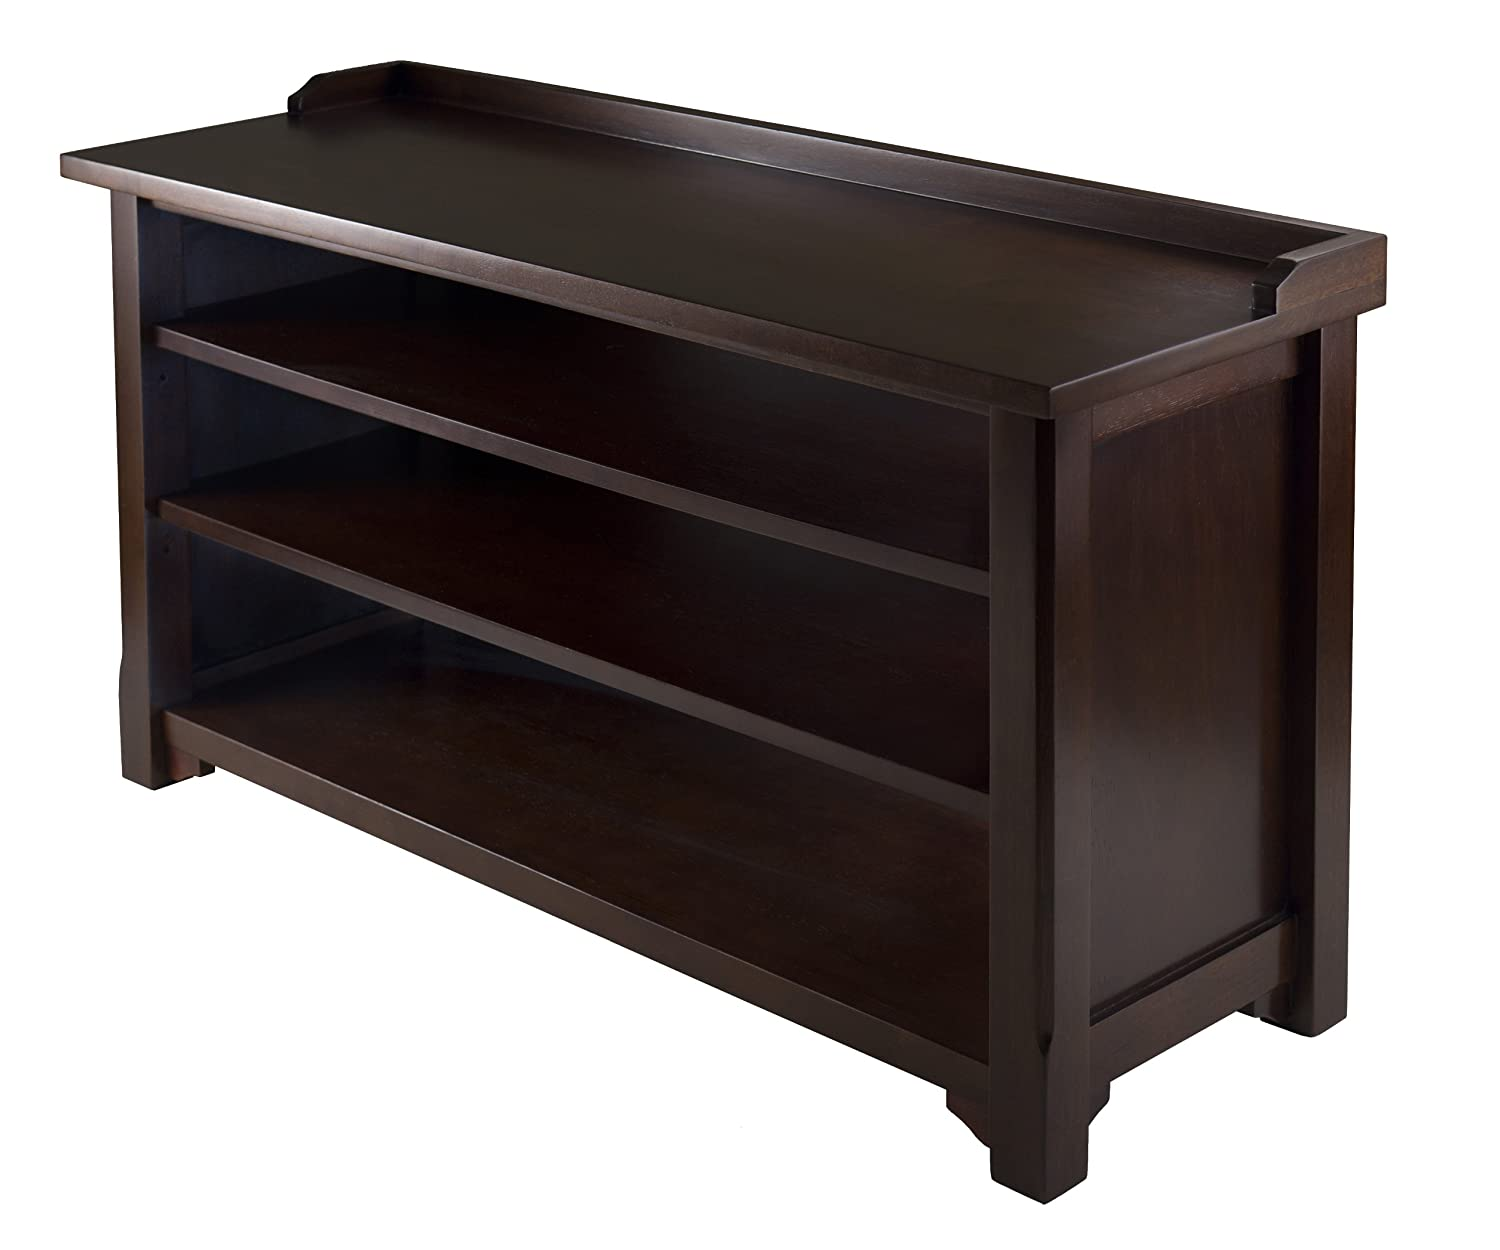 Espresso Foyer Bench : Amazon winsome dayton storage hall bench with shelves